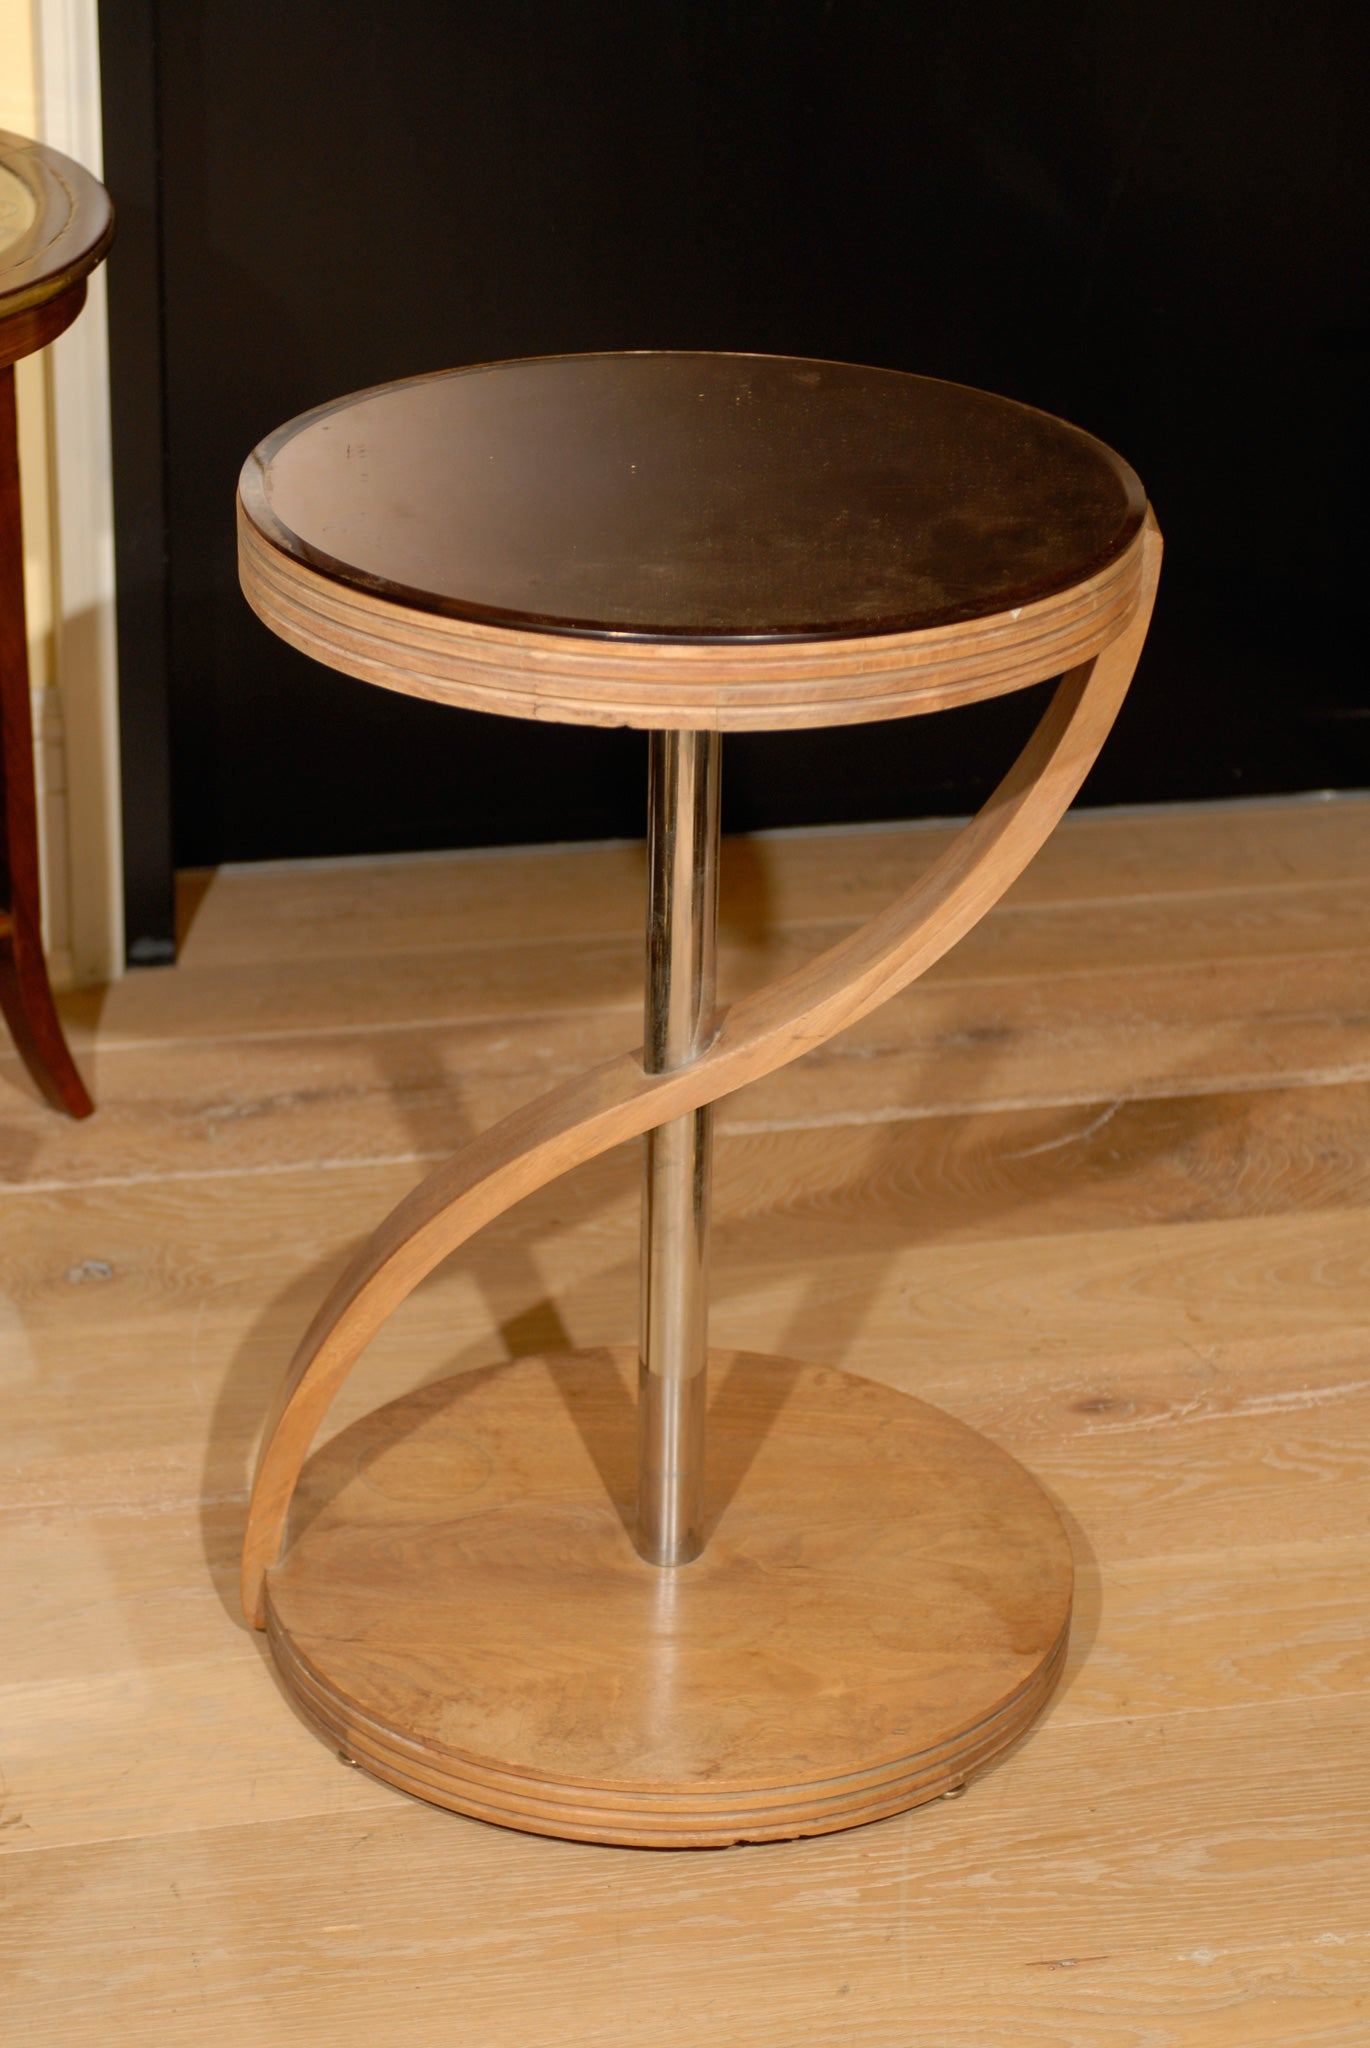 CONTEMPORARY TABLE, BLEACHED MAHOGANY, ROSE GLASS 6